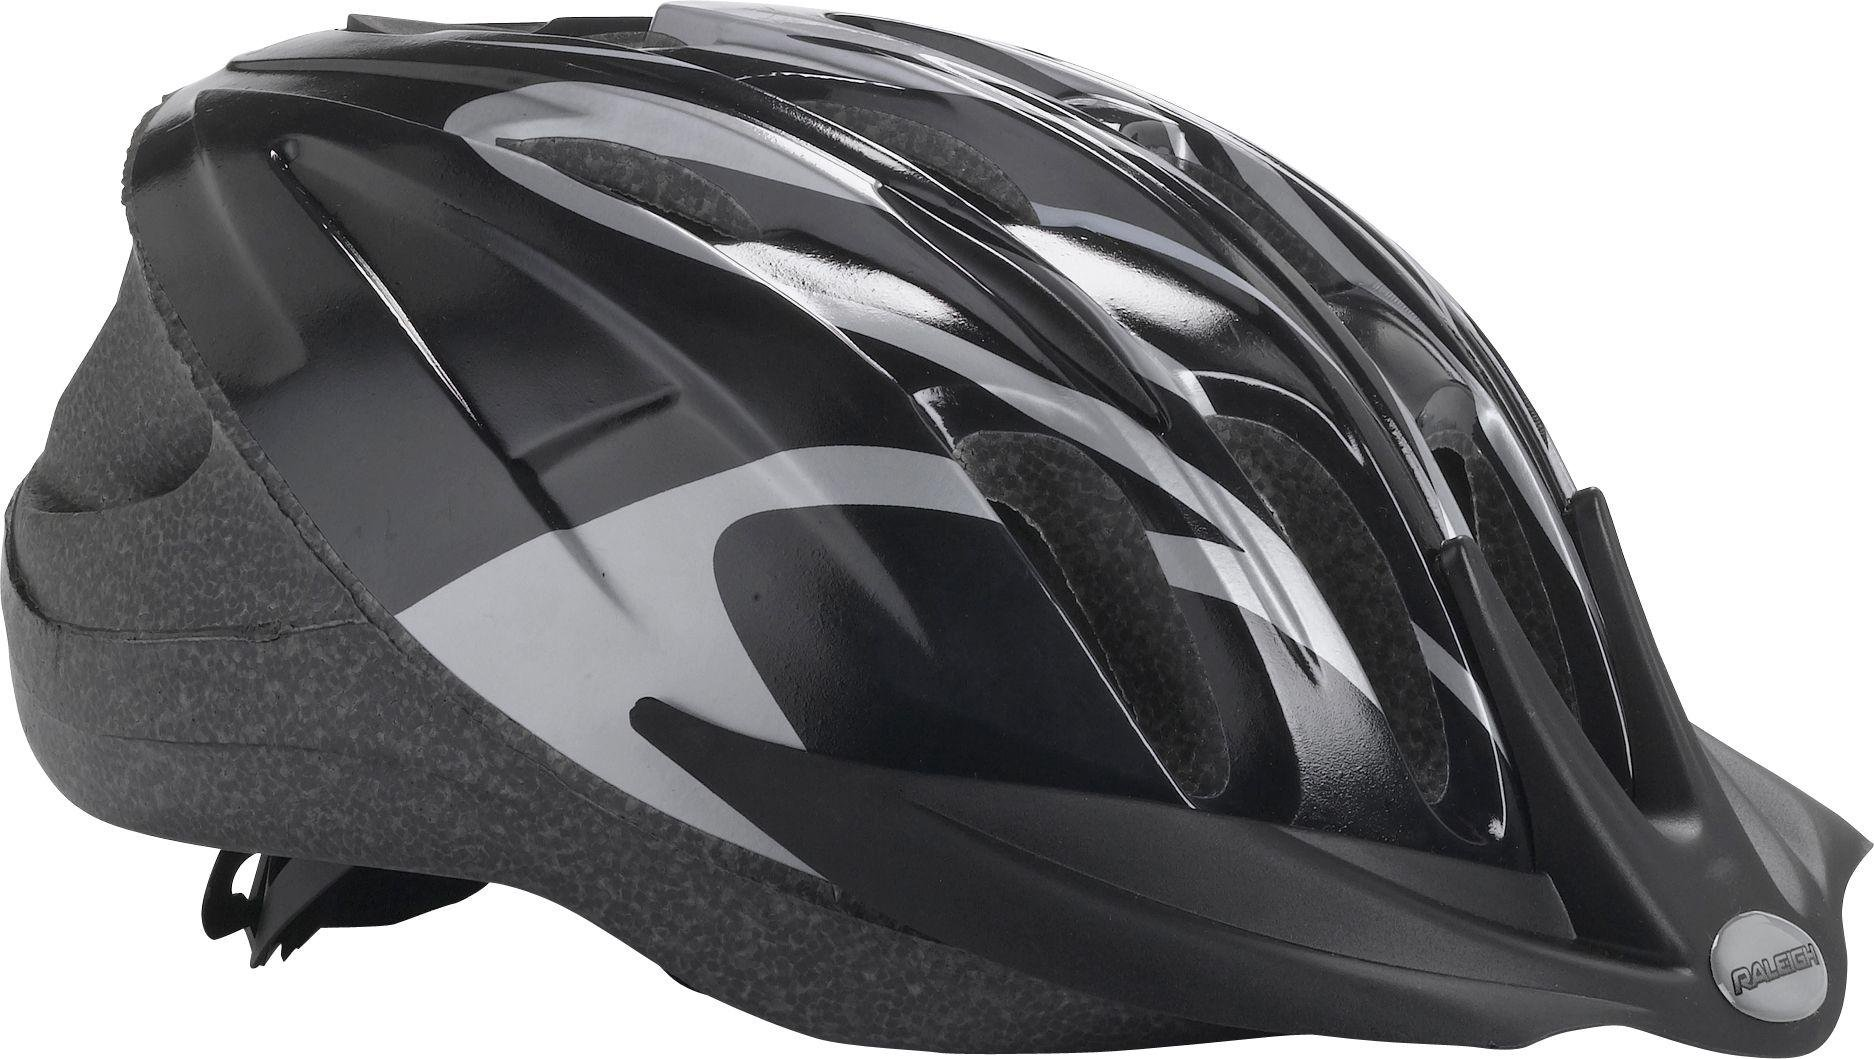 Helmet infusion blk sil 58-62